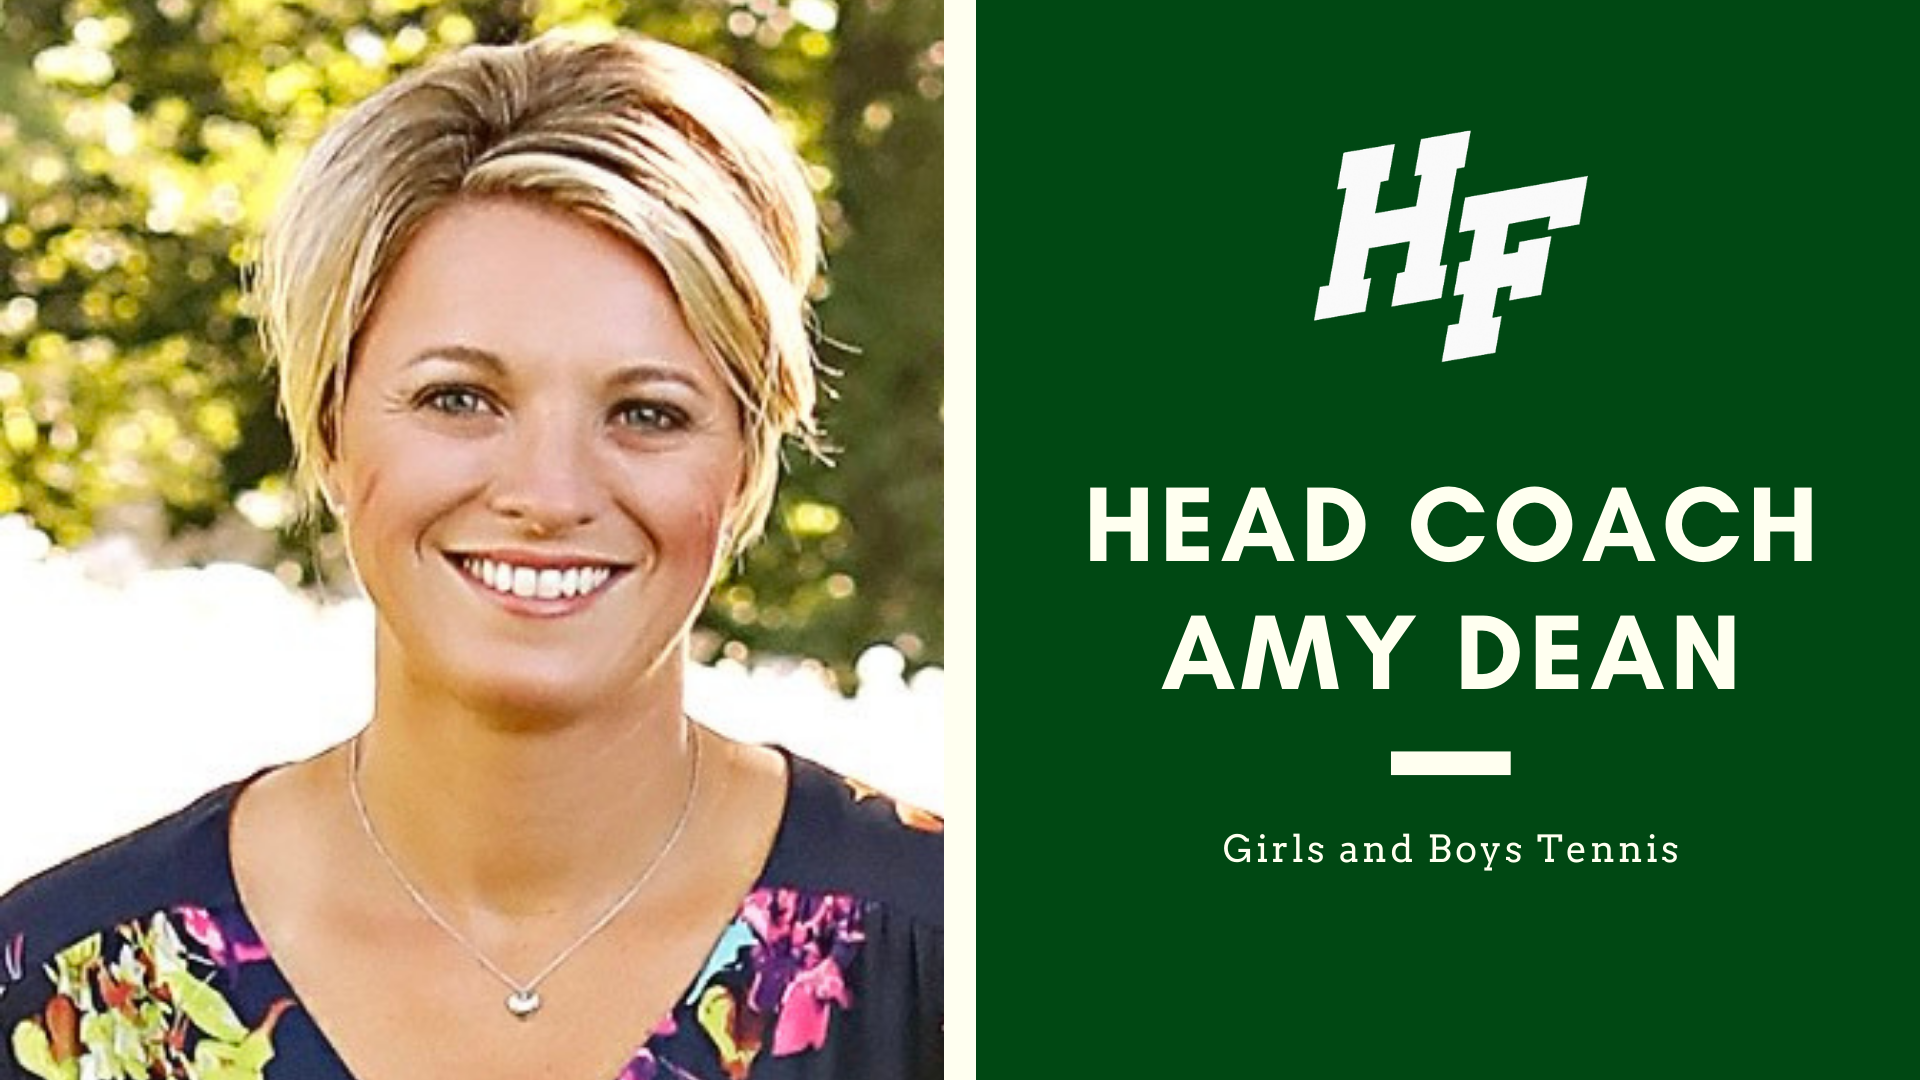 Amy Dean Named Head Coach Featured Image.